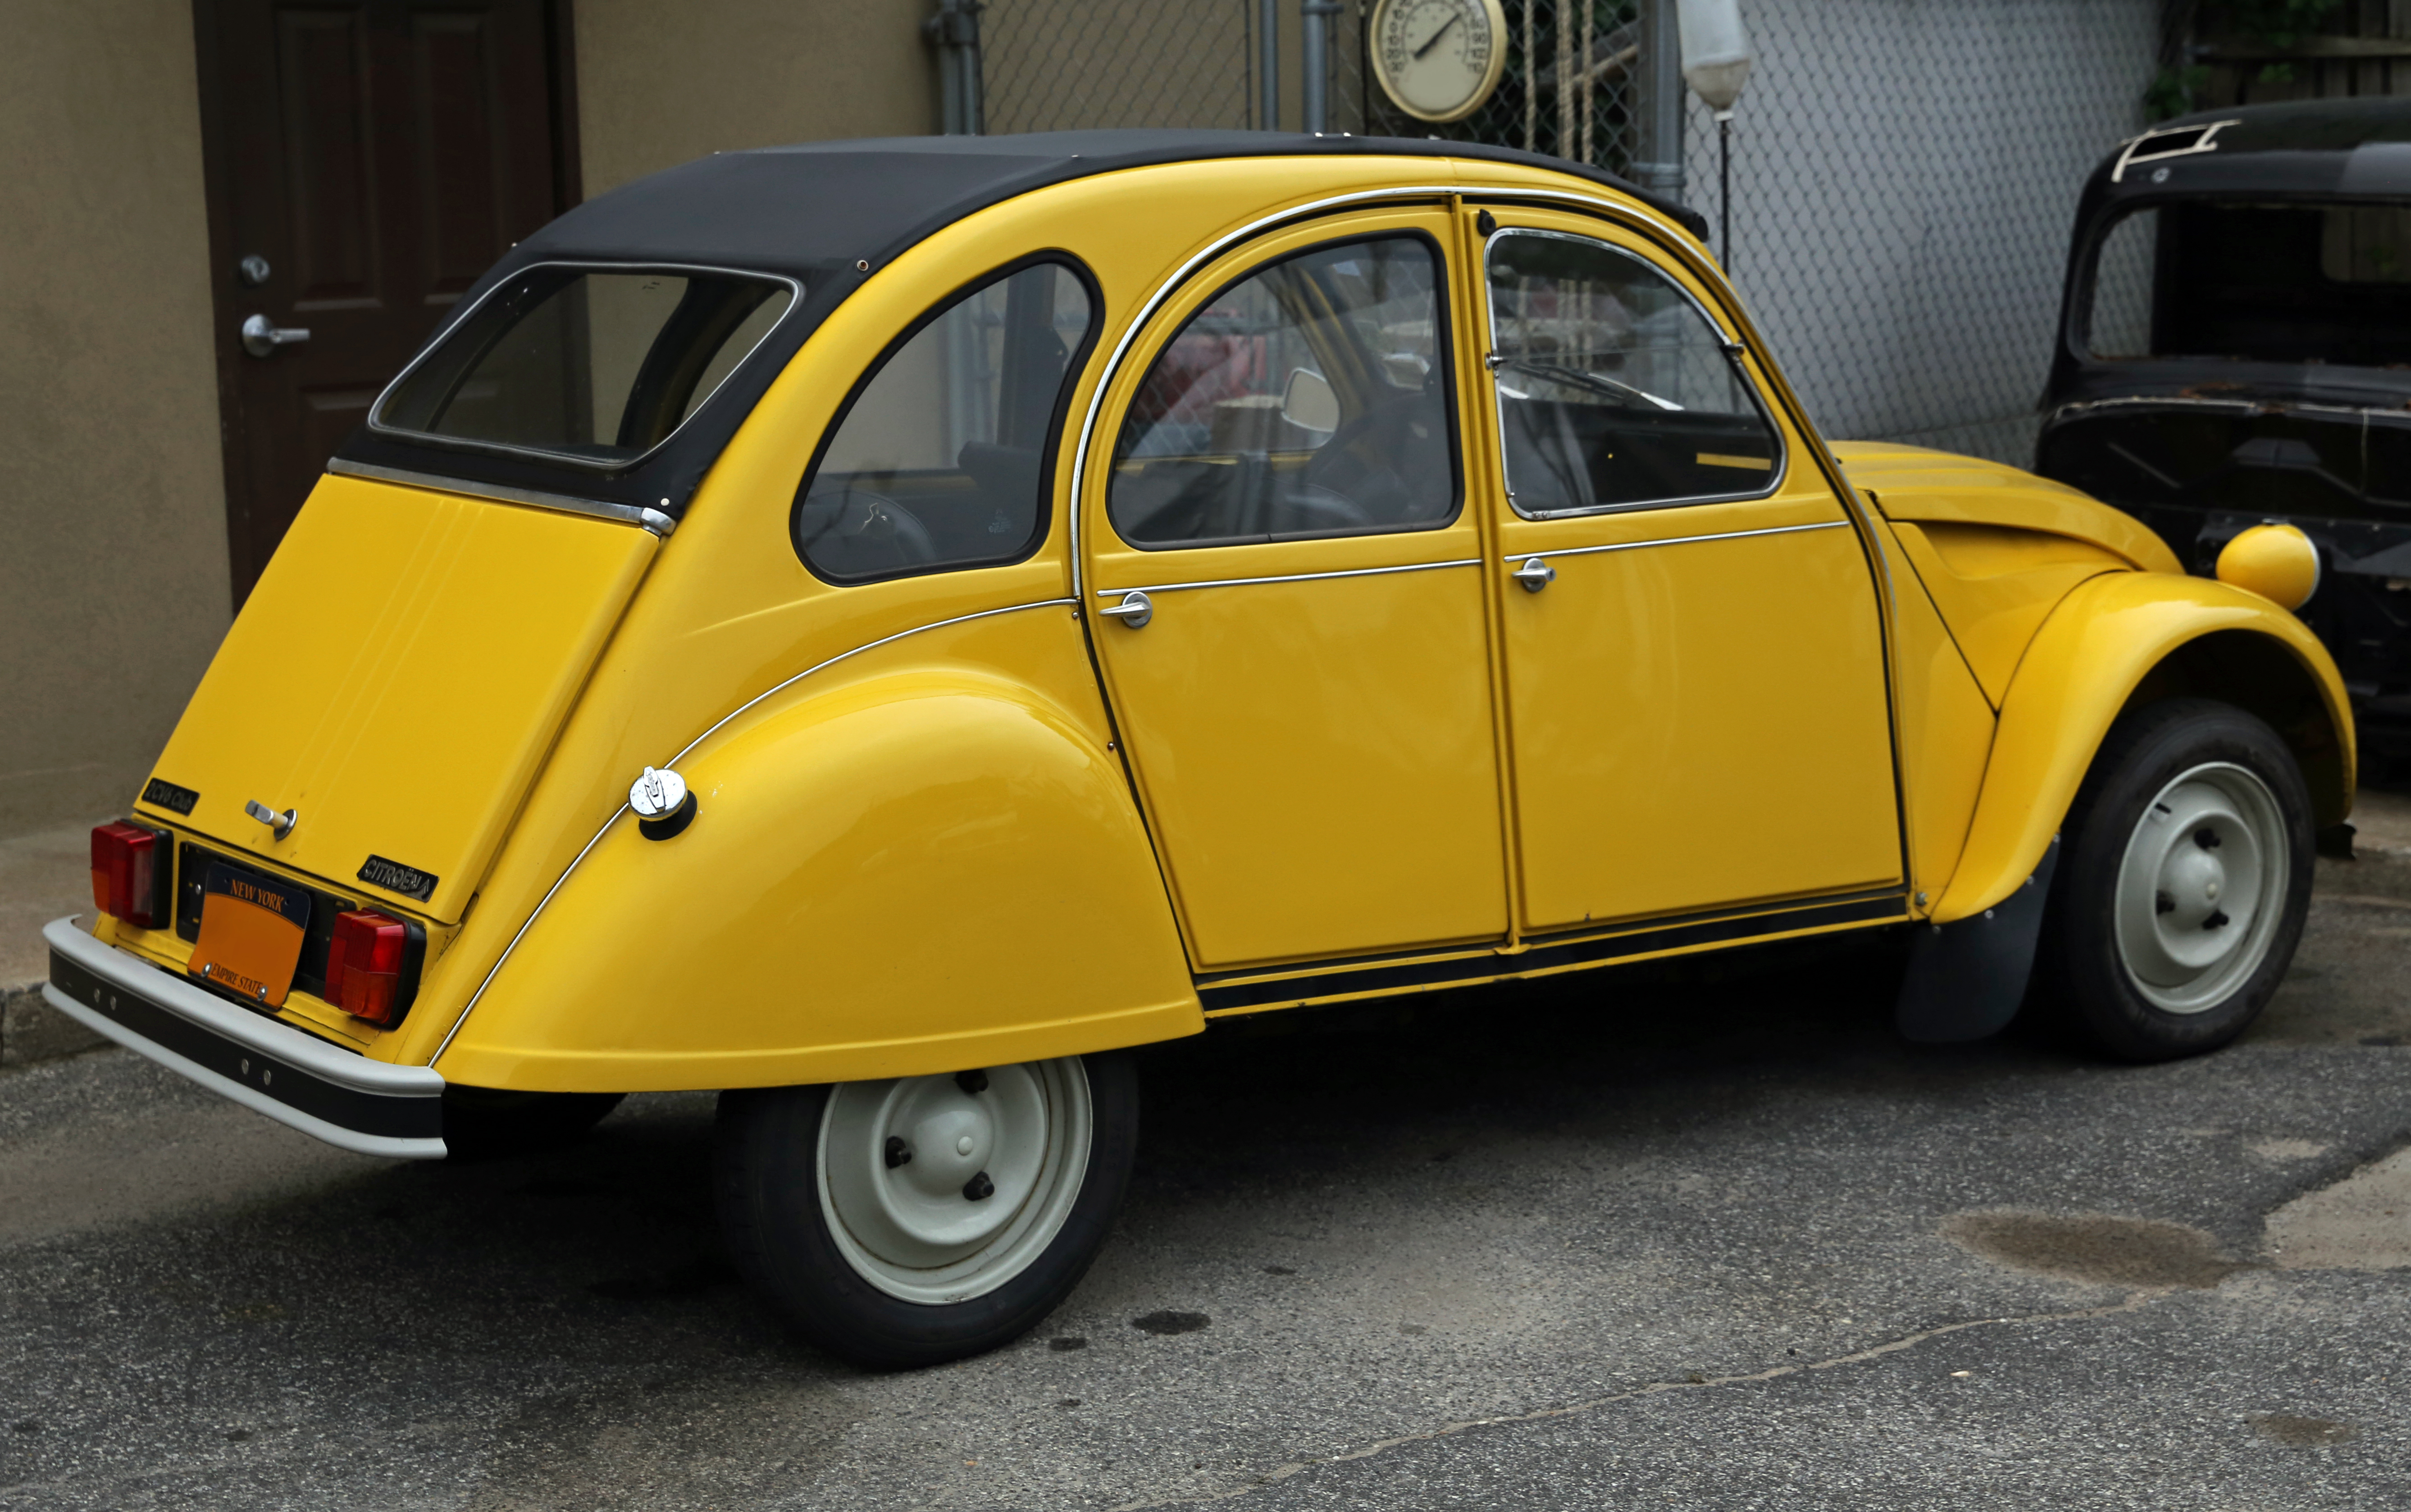 file 1984 citro n 2cv club 6 in yellow rear wikimedia commons. Black Bedroom Furniture Sets. Home Design Ideas